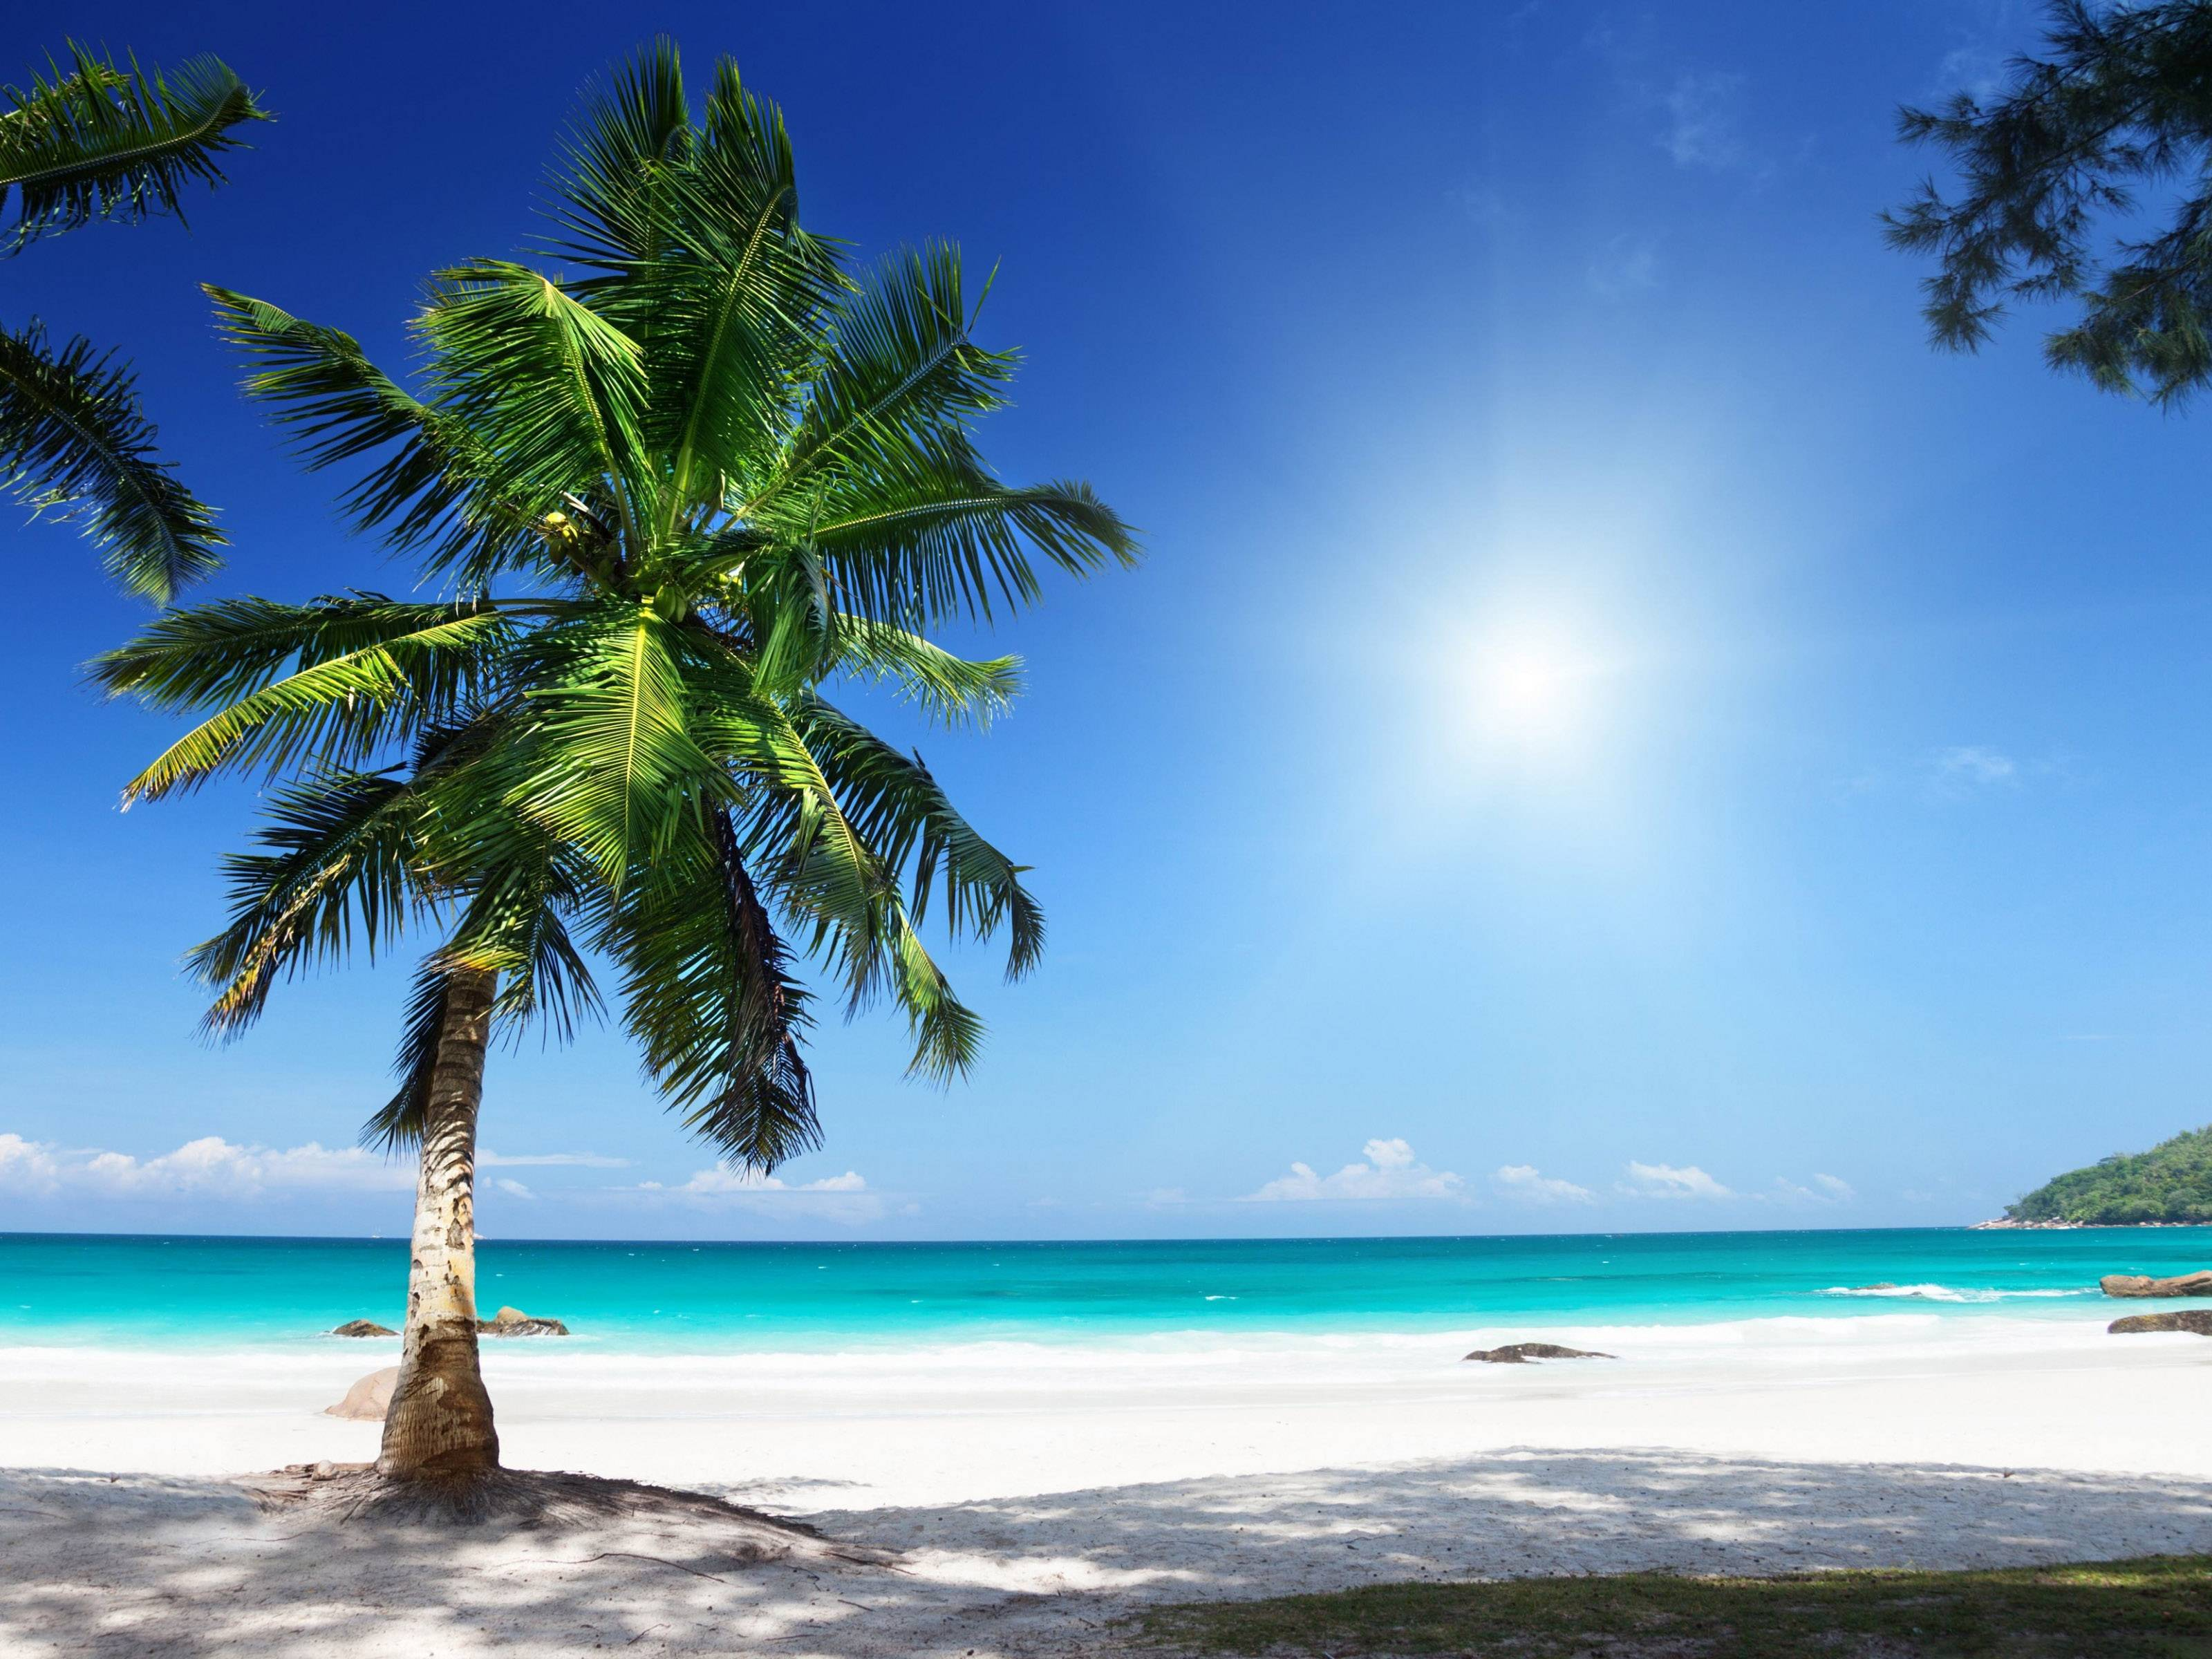 Hd Tropical Island Beach Paradise Wallpapers And Backgrounds: Sunny Beach Wallpapers